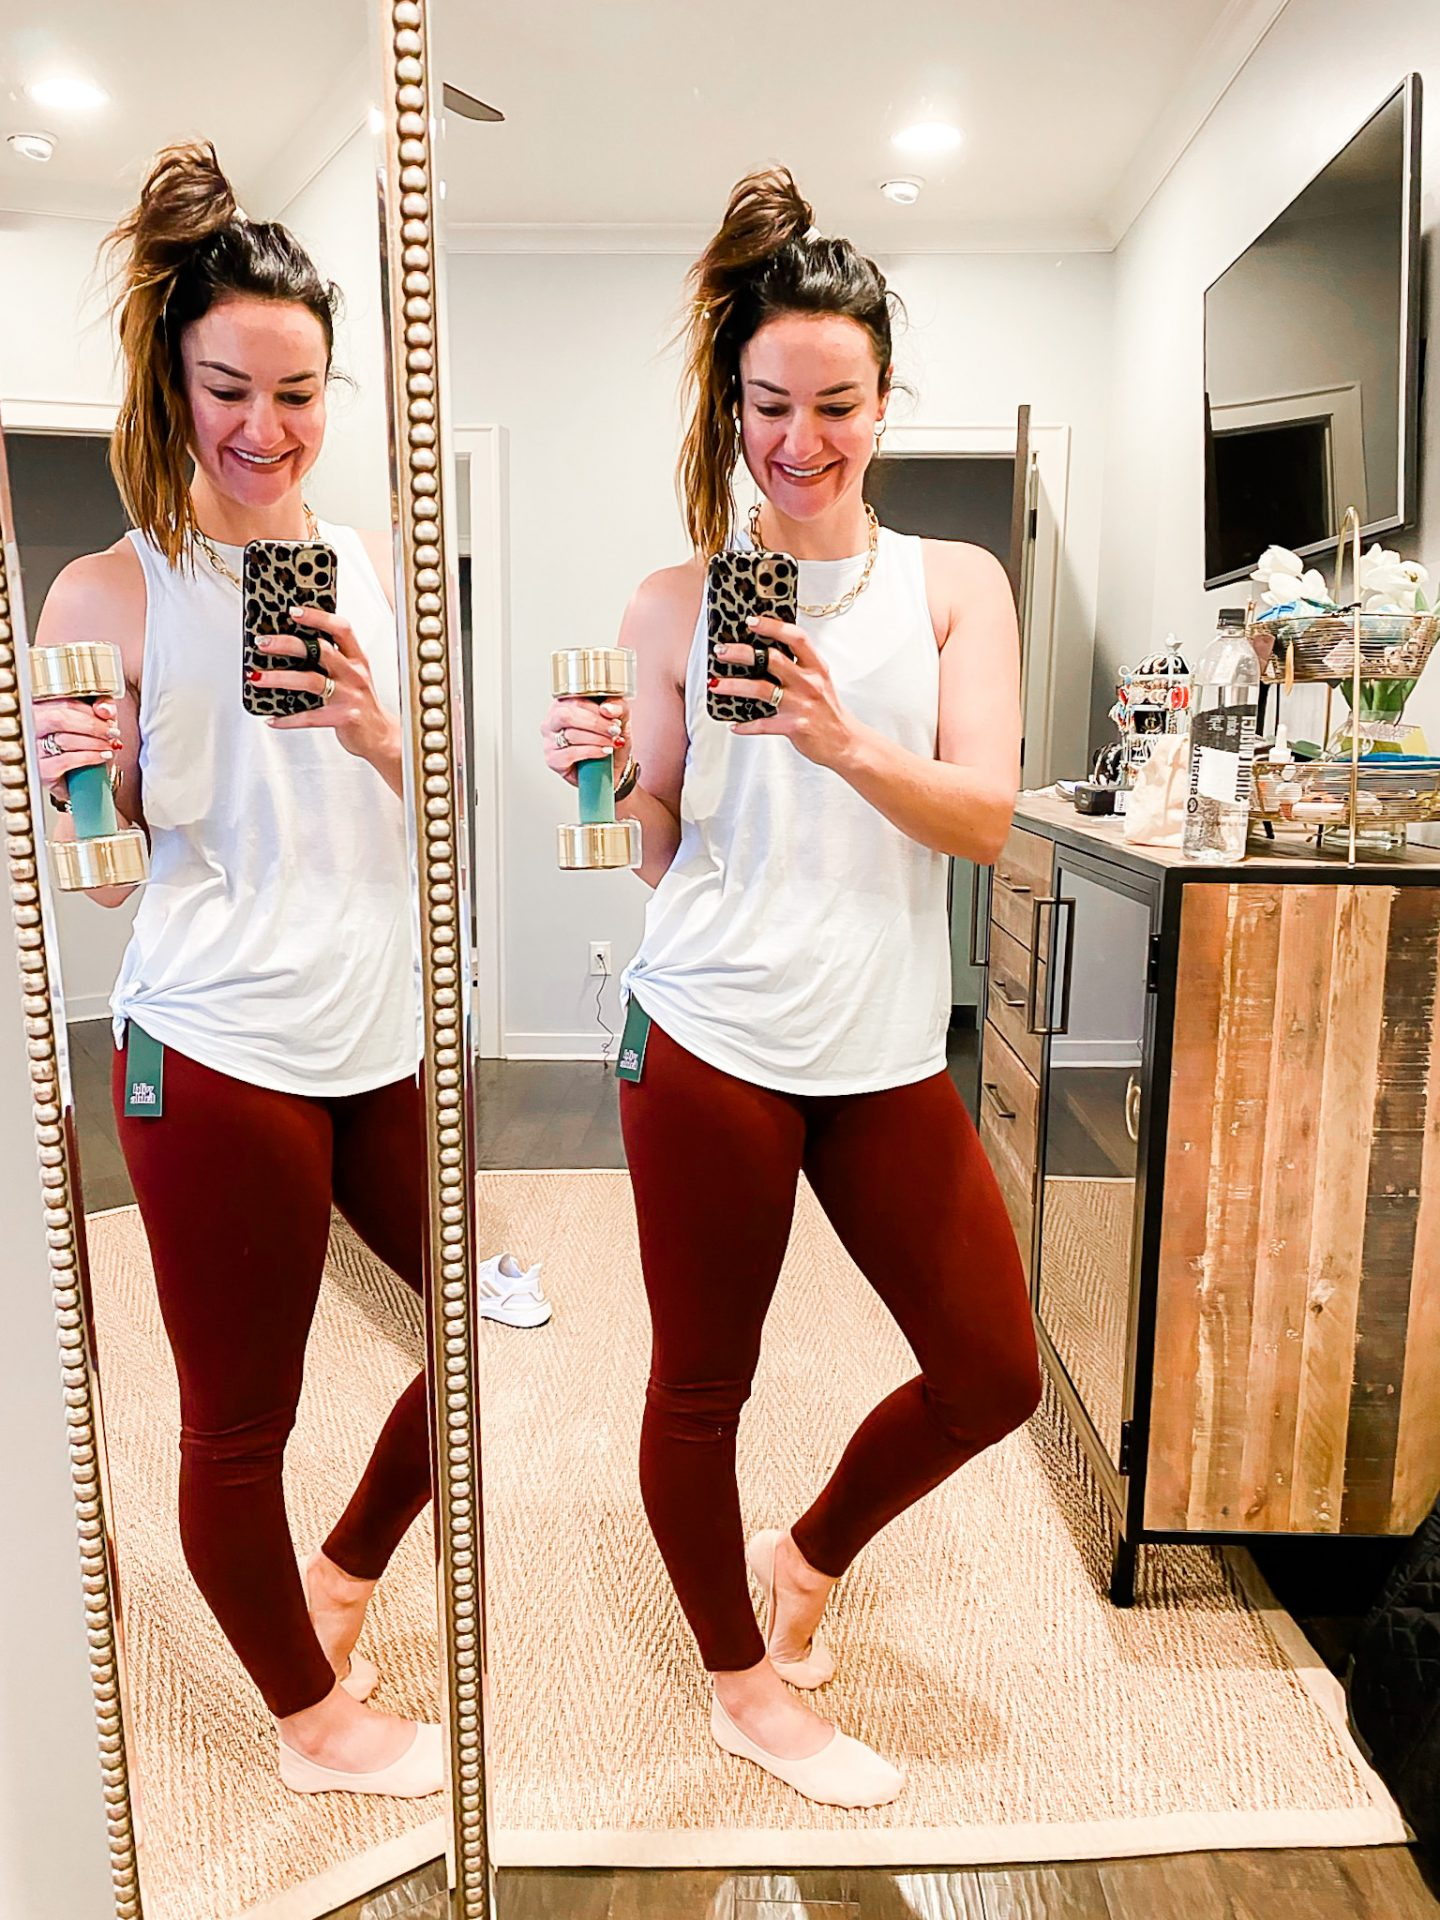 The Best Target Activewear For Your Entire Family by Alabama Fitness + Style blogger, Heather Brown // My Life Well Loved